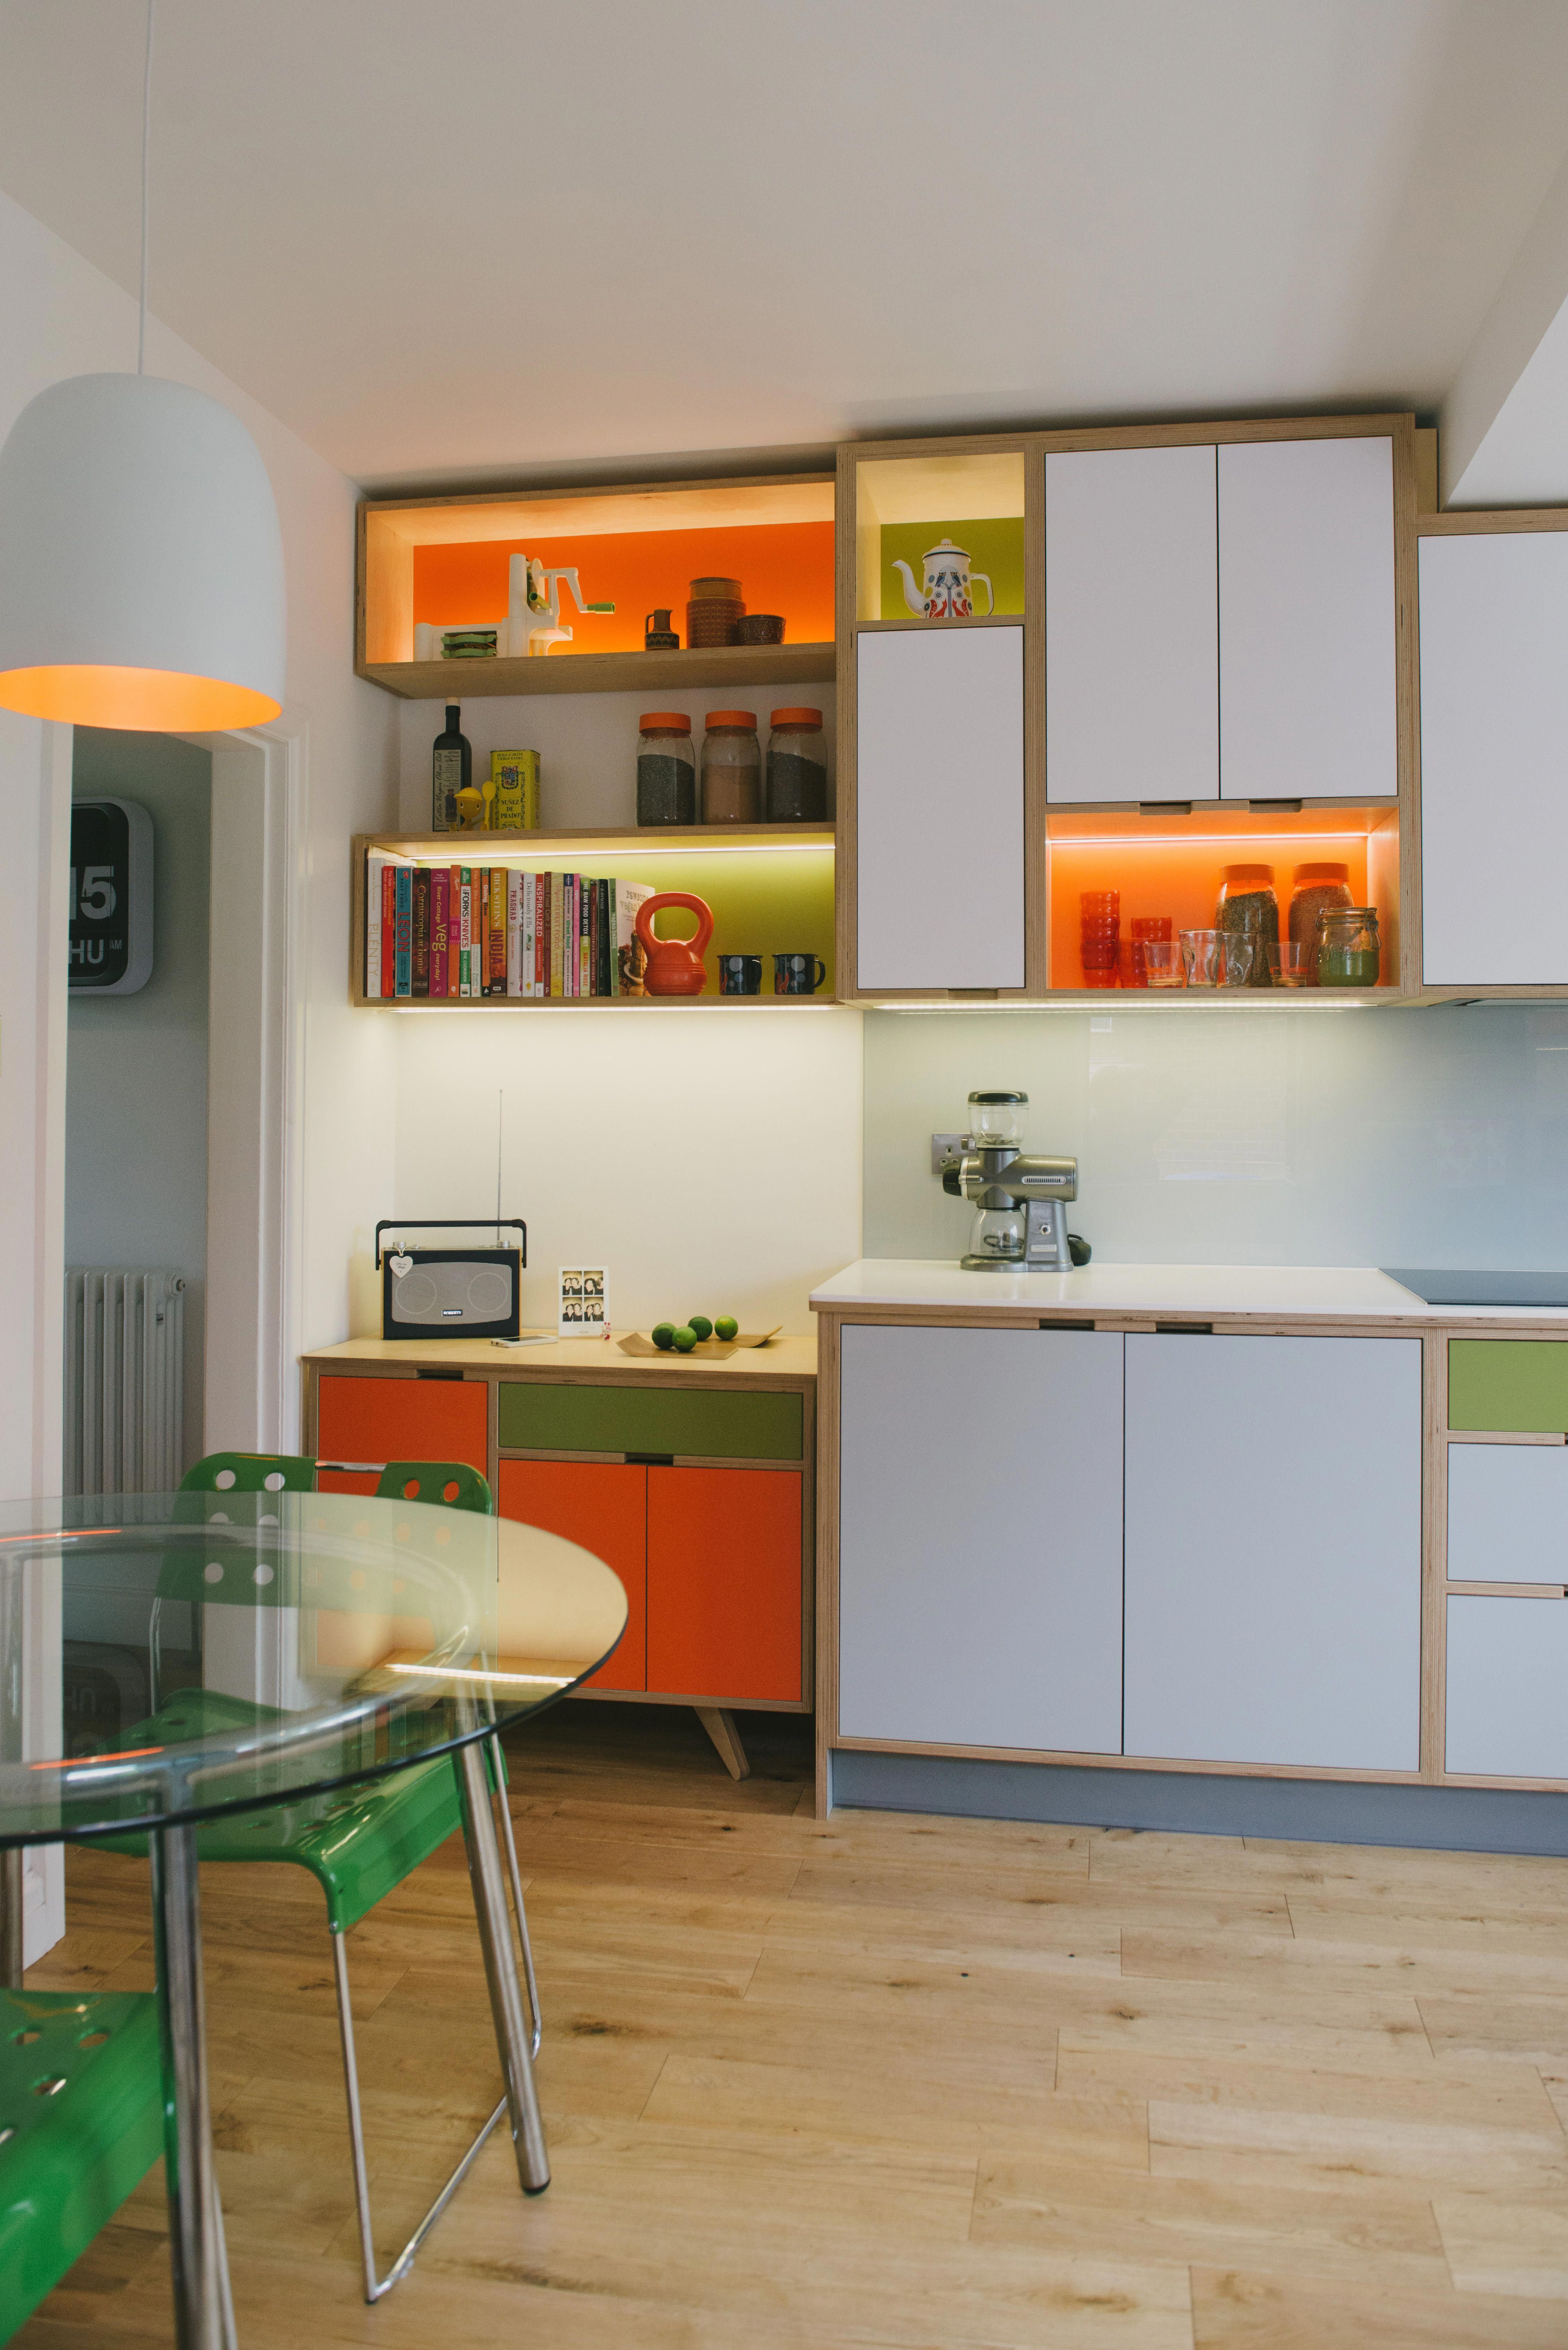 Wood Wire Bespoke Plywood Kitchen White Orange And Green Laminated Plywood Units With Illuminated Or Plywood Kitchen Kitchen Design Cheap Kitchen Cabinets